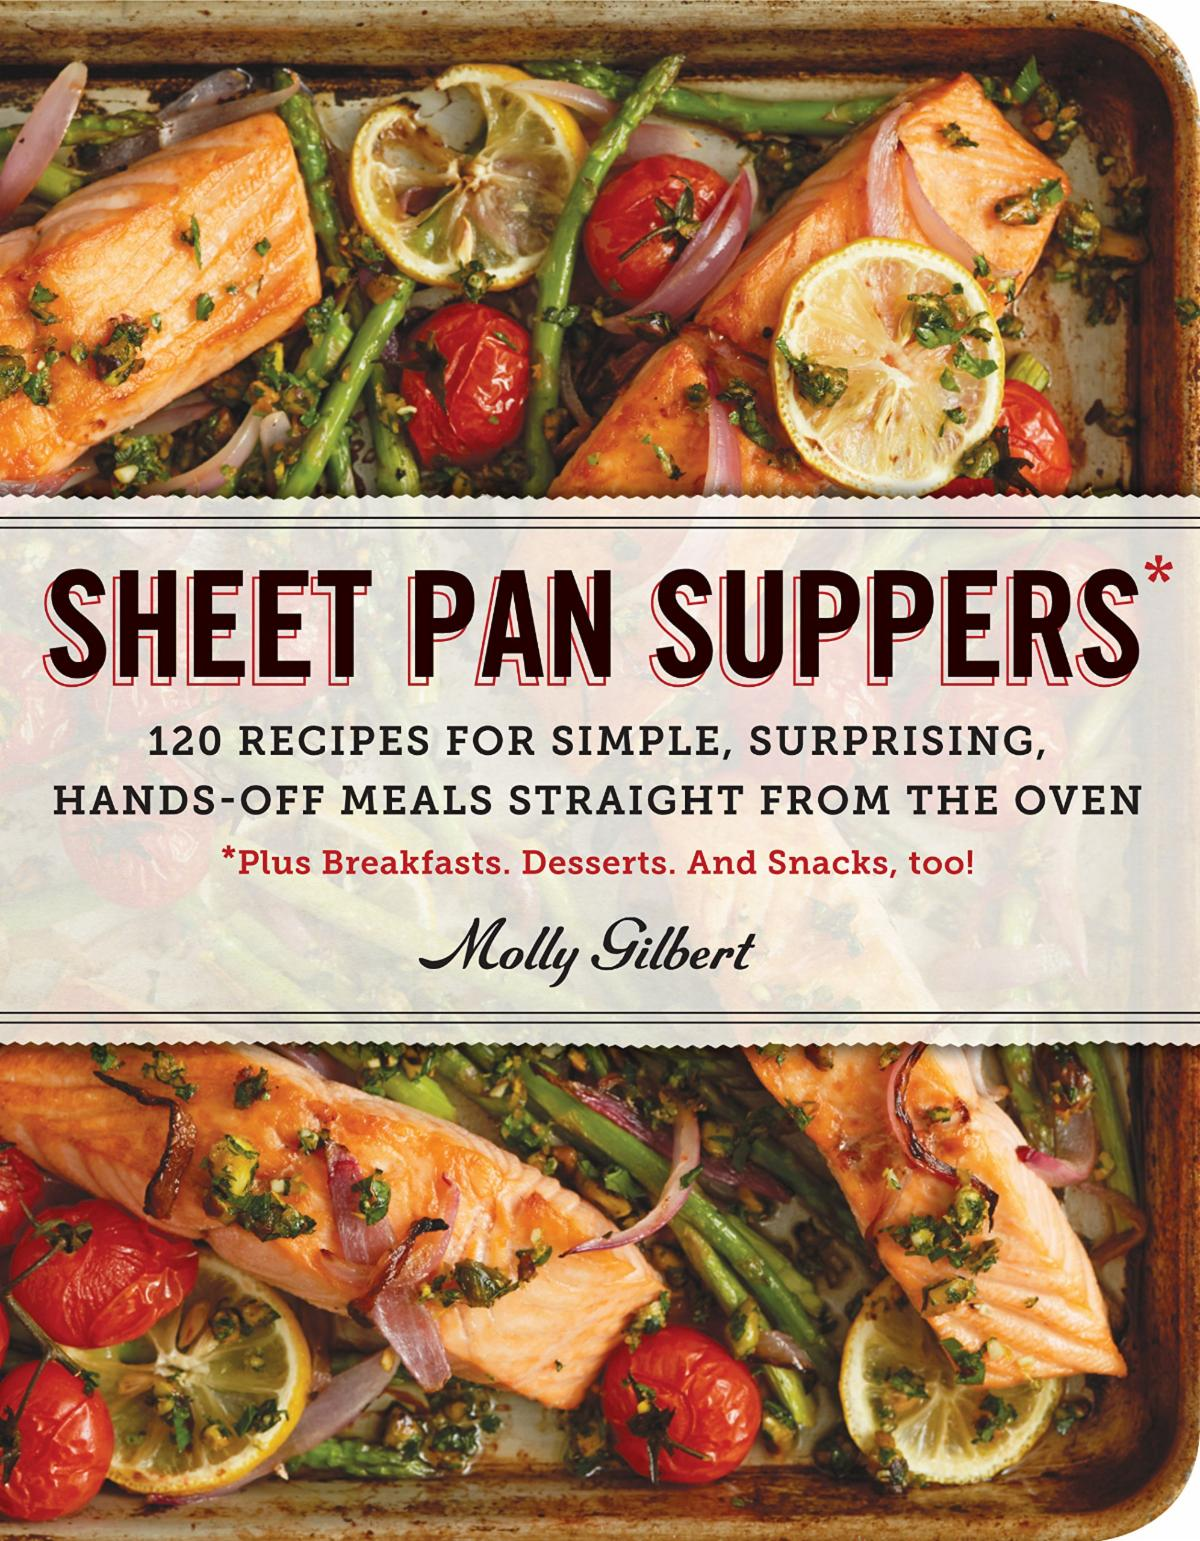 Sheet Pan Suppers by Molly Gilbert